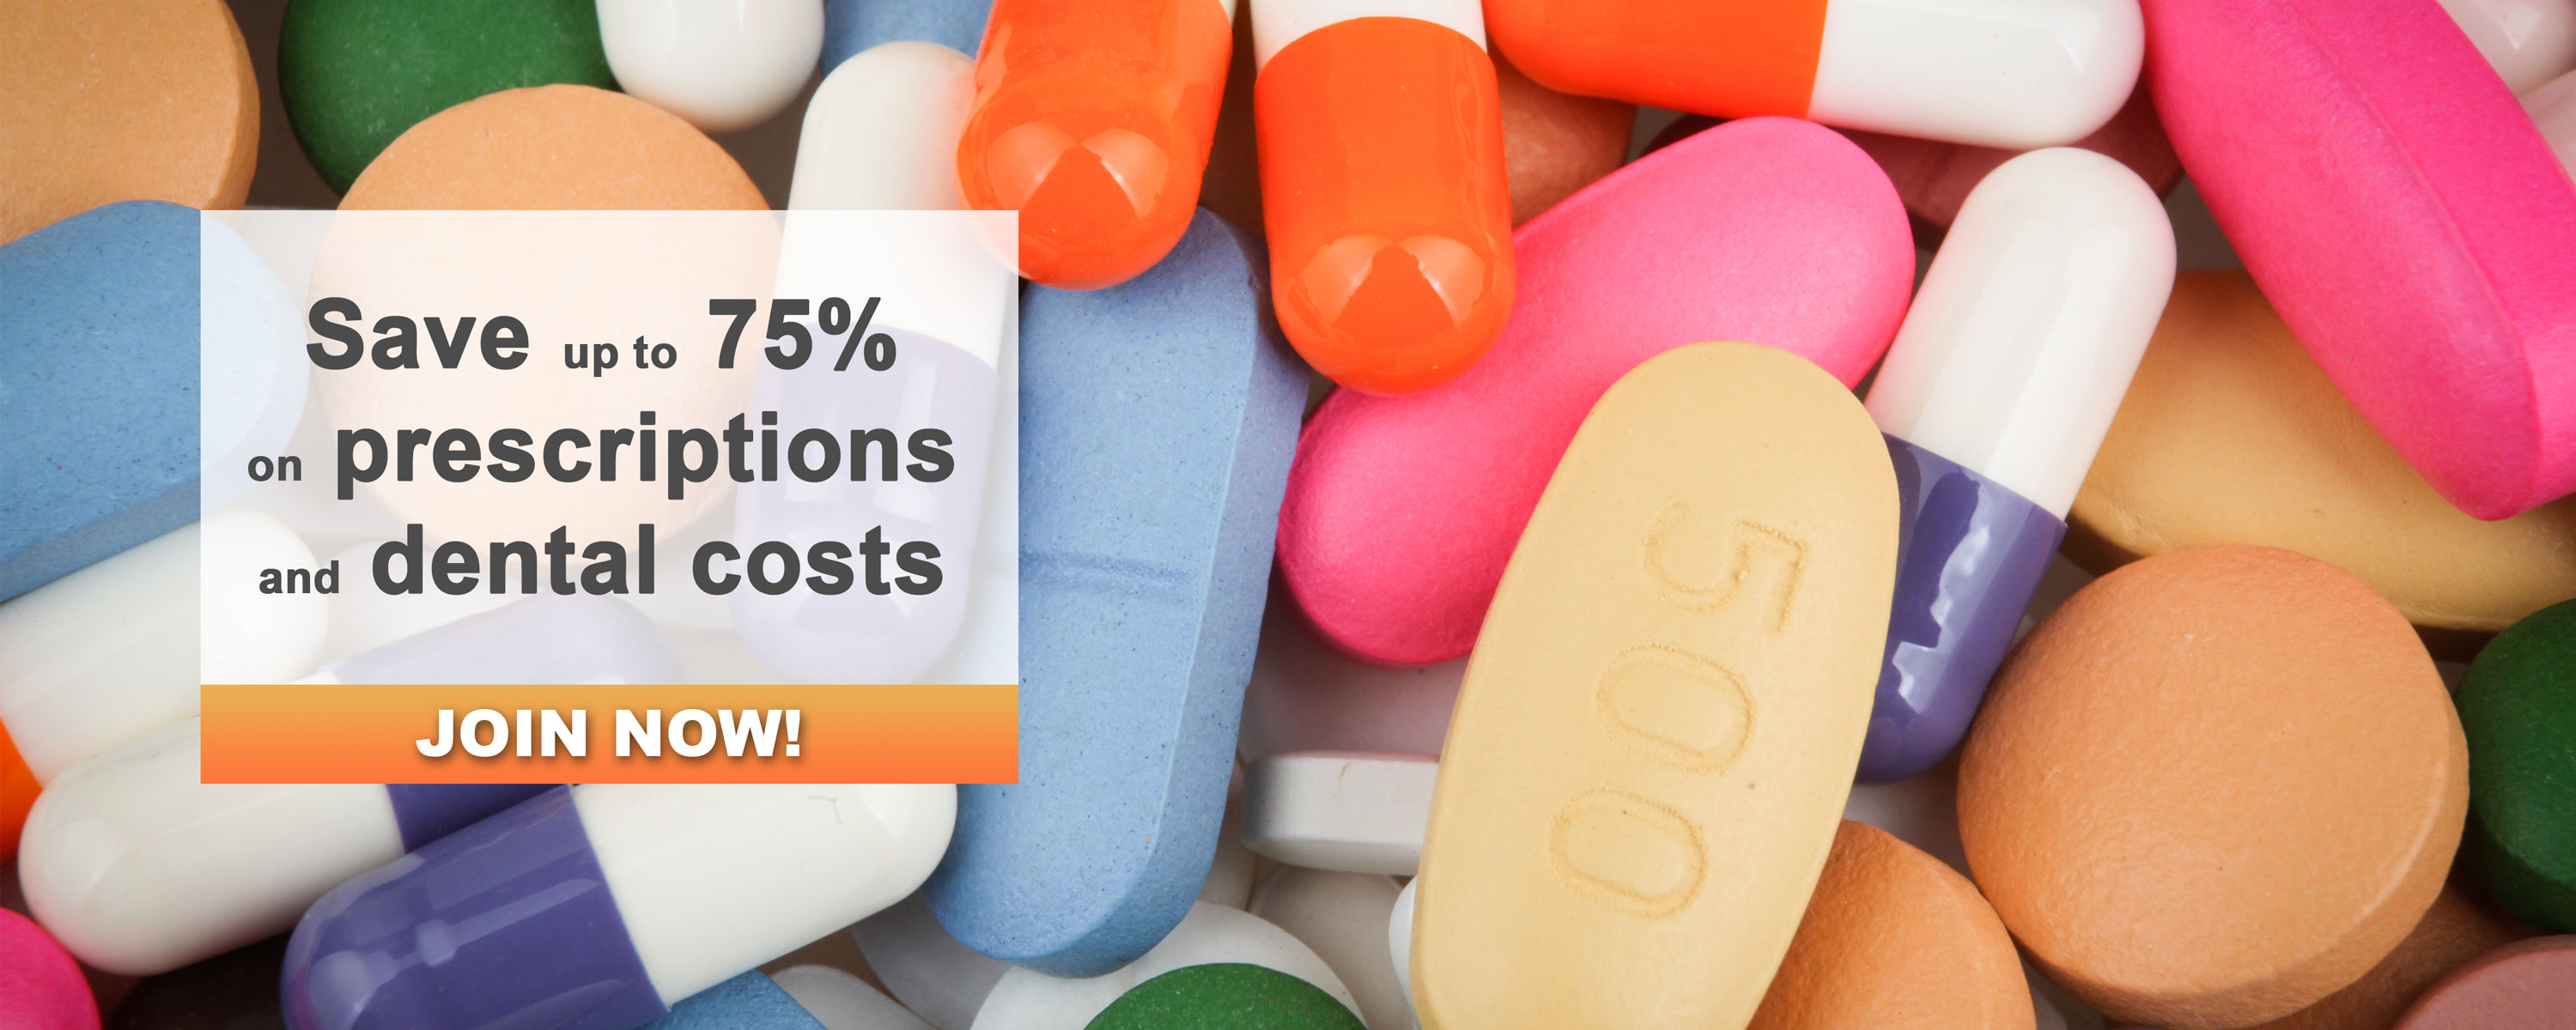 Free rx dental plan - Save Up To 75 On Prescription Drugs And Dental